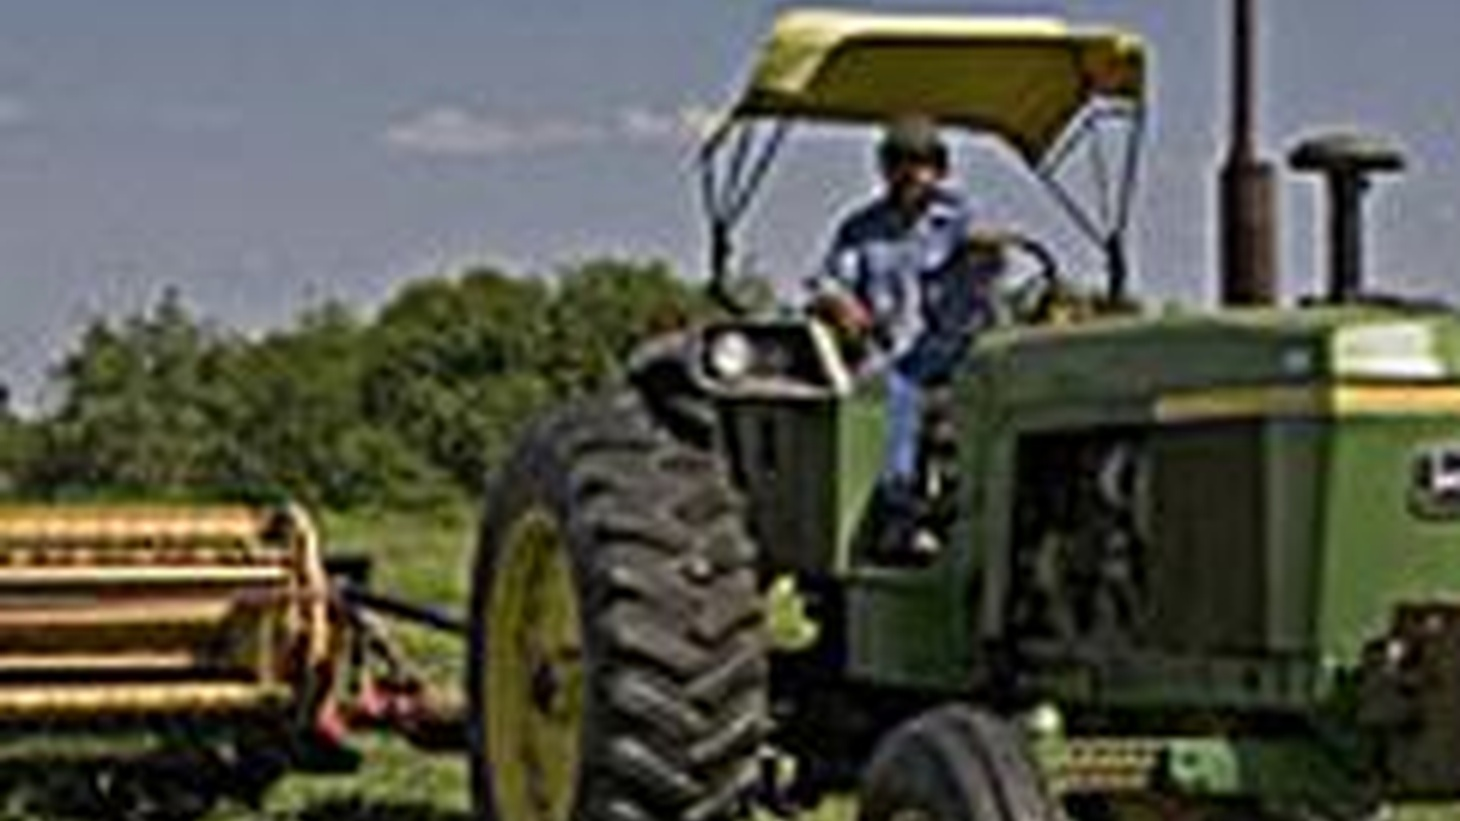 Increased farm subsidies have made strange bedfellows of environmentalists and the Bush Administration. They agree that that the big federal money goes to big agri-business at the expense of the little guys, not what subsidies were designed to do. Also, the Supreme Court upholds Indiana Voter ID Law, and Reverend Jeremiah Wright goes public…again.